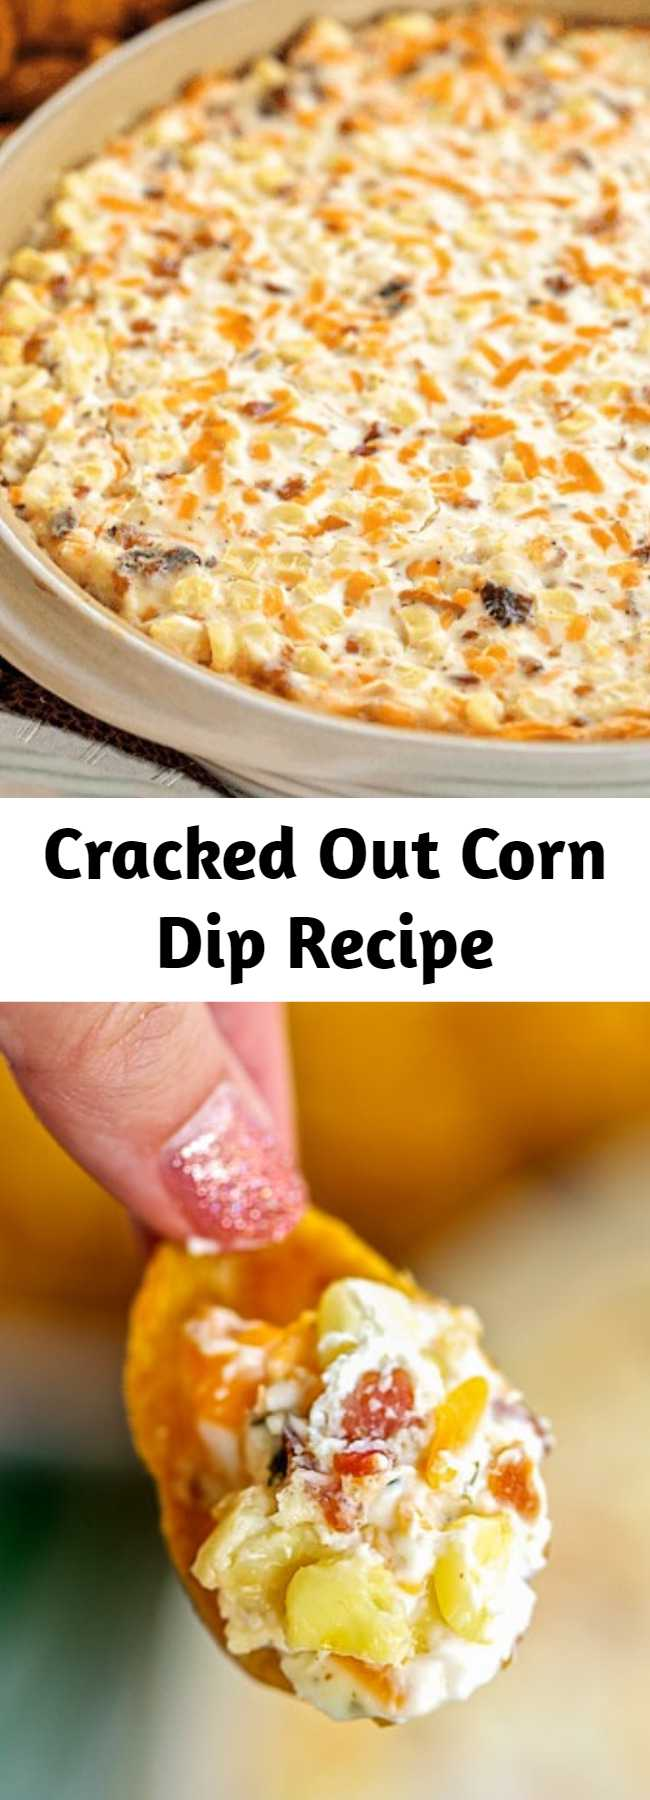 Cracked Out Corn Dip Recipe - Corn, cream cheese, sour cream, cheddar, bacon and Ranch. I took this to a party and it was the first thing to go! Can make ahead and refrigerate until ready to eat. Our FAVORITE dip! YUM #dip #appetizer #partyfood #corn #bacon #ranch